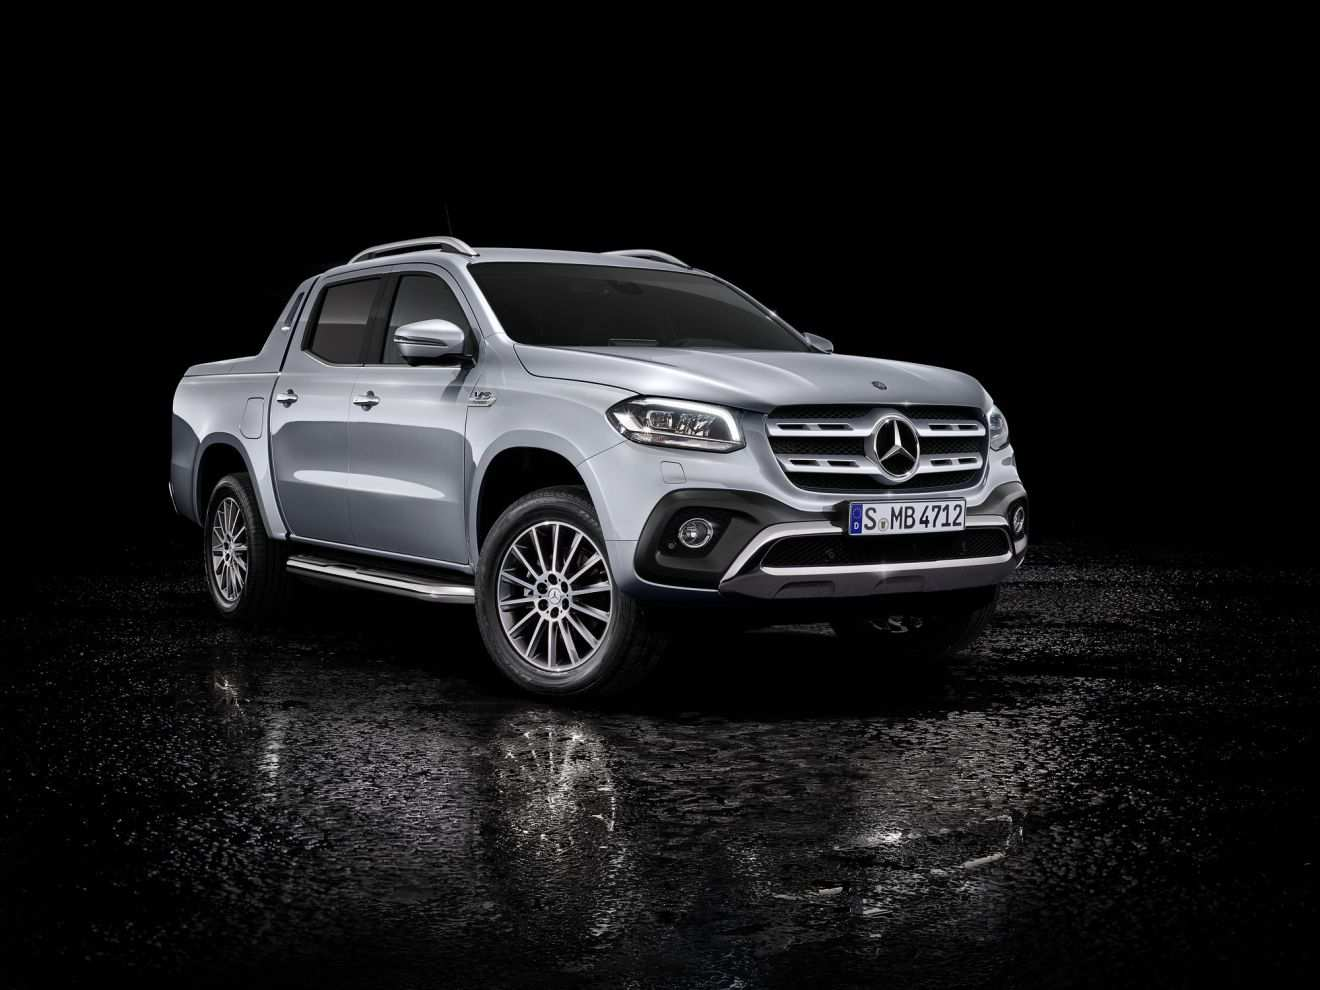 40 Great 2019 Mercedes Truck Price Reviews with 2019 Mercedes Truck Price